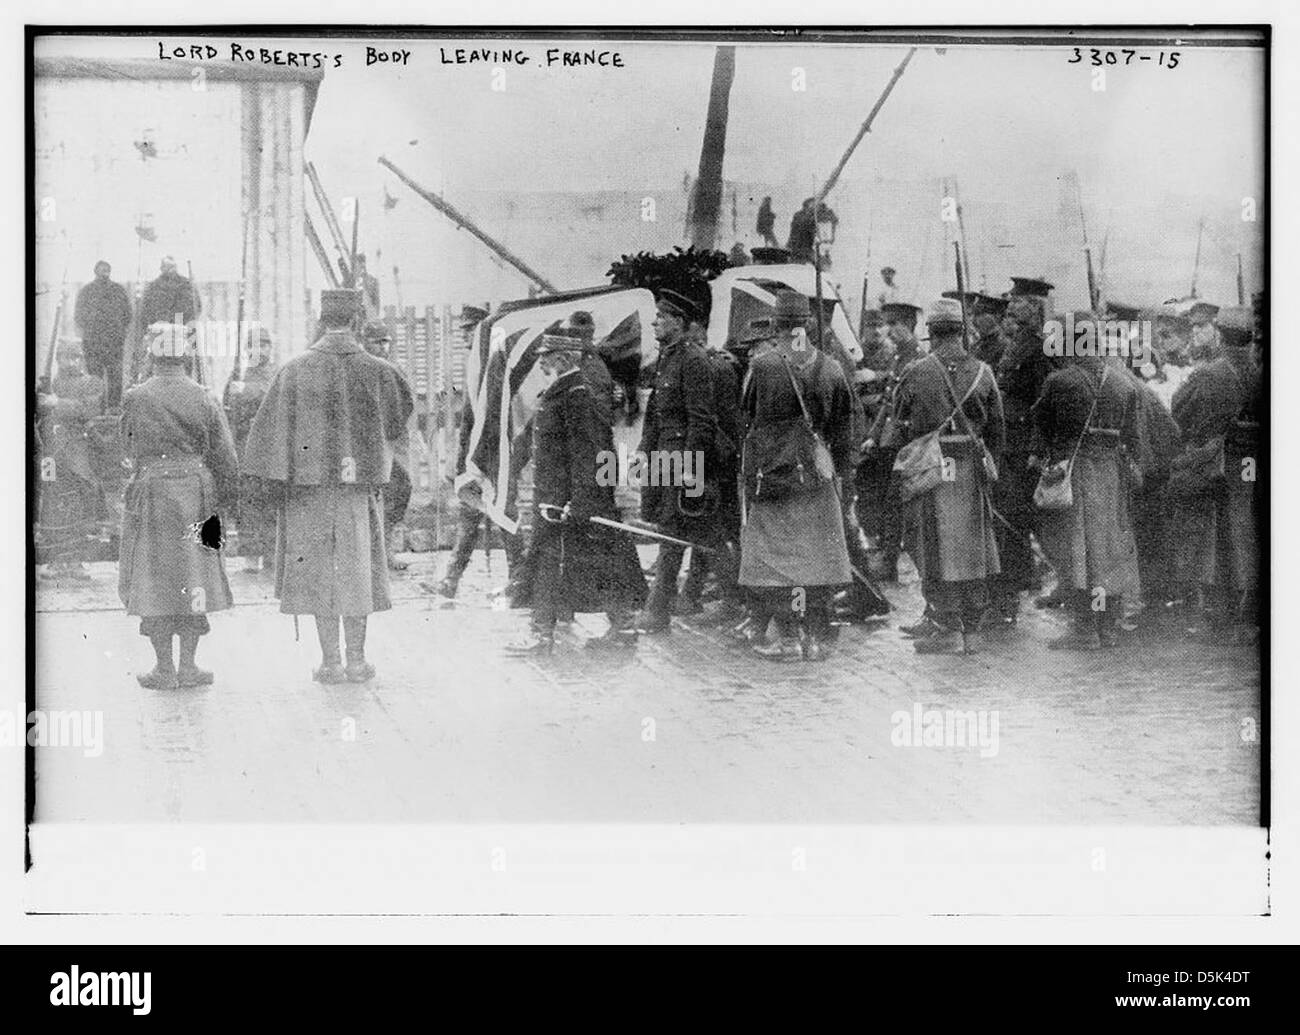 Lord Roberts' body leaving France (LOC) - Stock Image